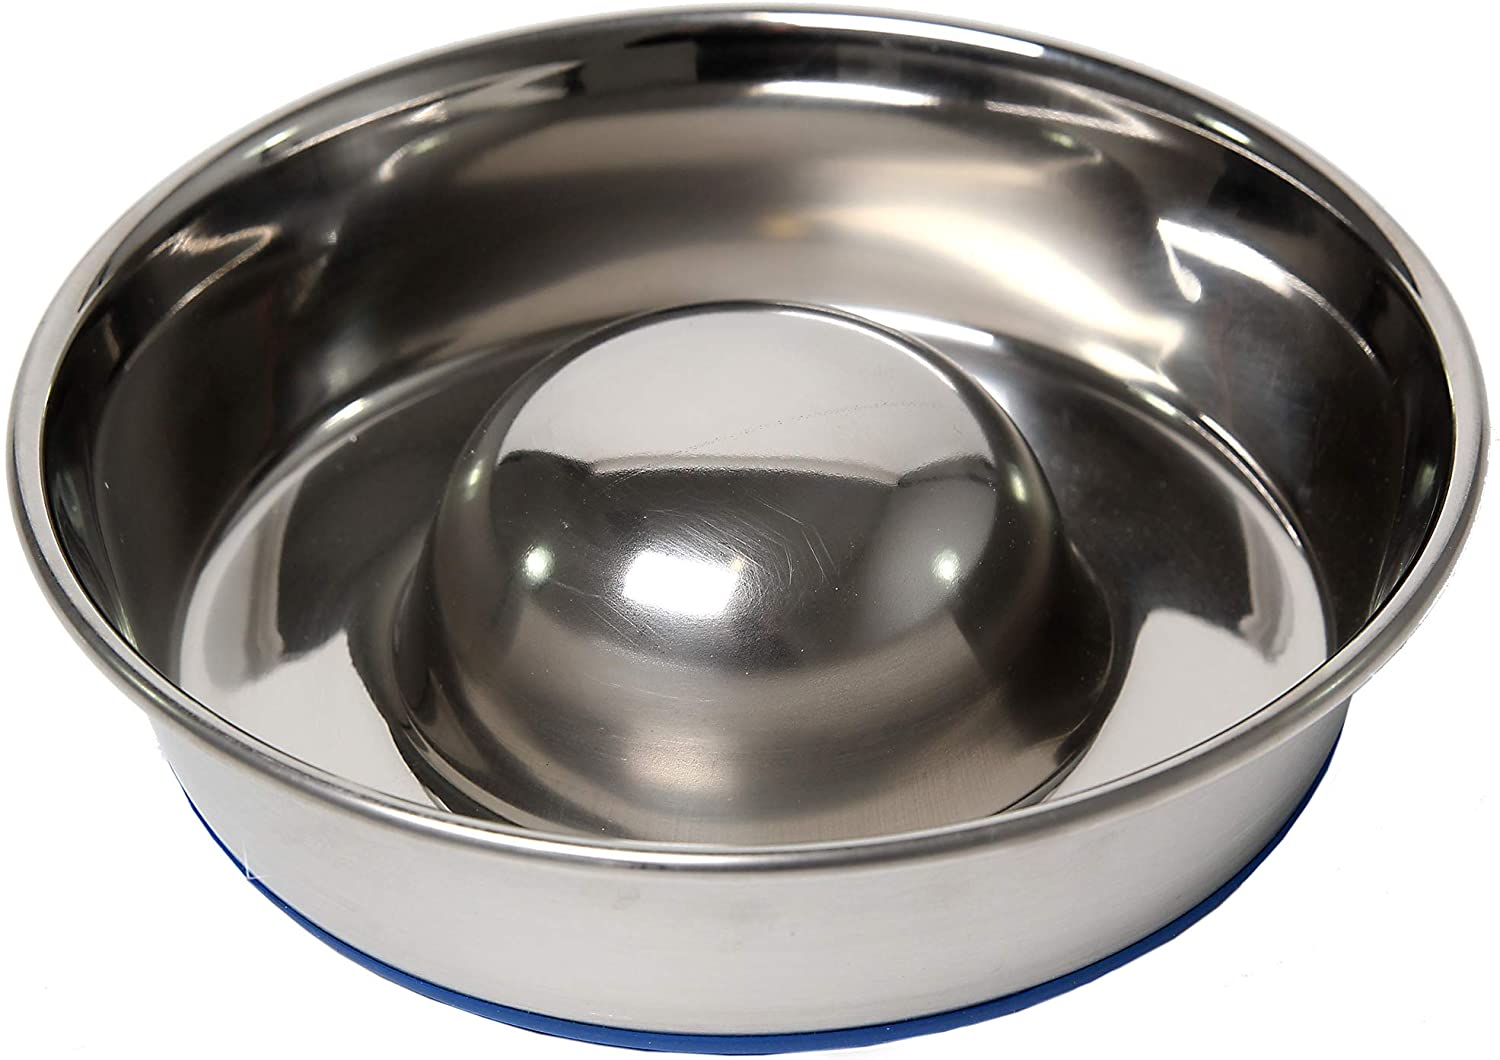 OurPets DuraPet Slow Feed Premium Stainless Steel Dog Bowl (Durable Stainless Steel Dog Bowls, Slow Feeder Dog Bowls, Dog Food Bowl, Dog Water Bowl) Great Alternative to Snuffle Mat for Dogs